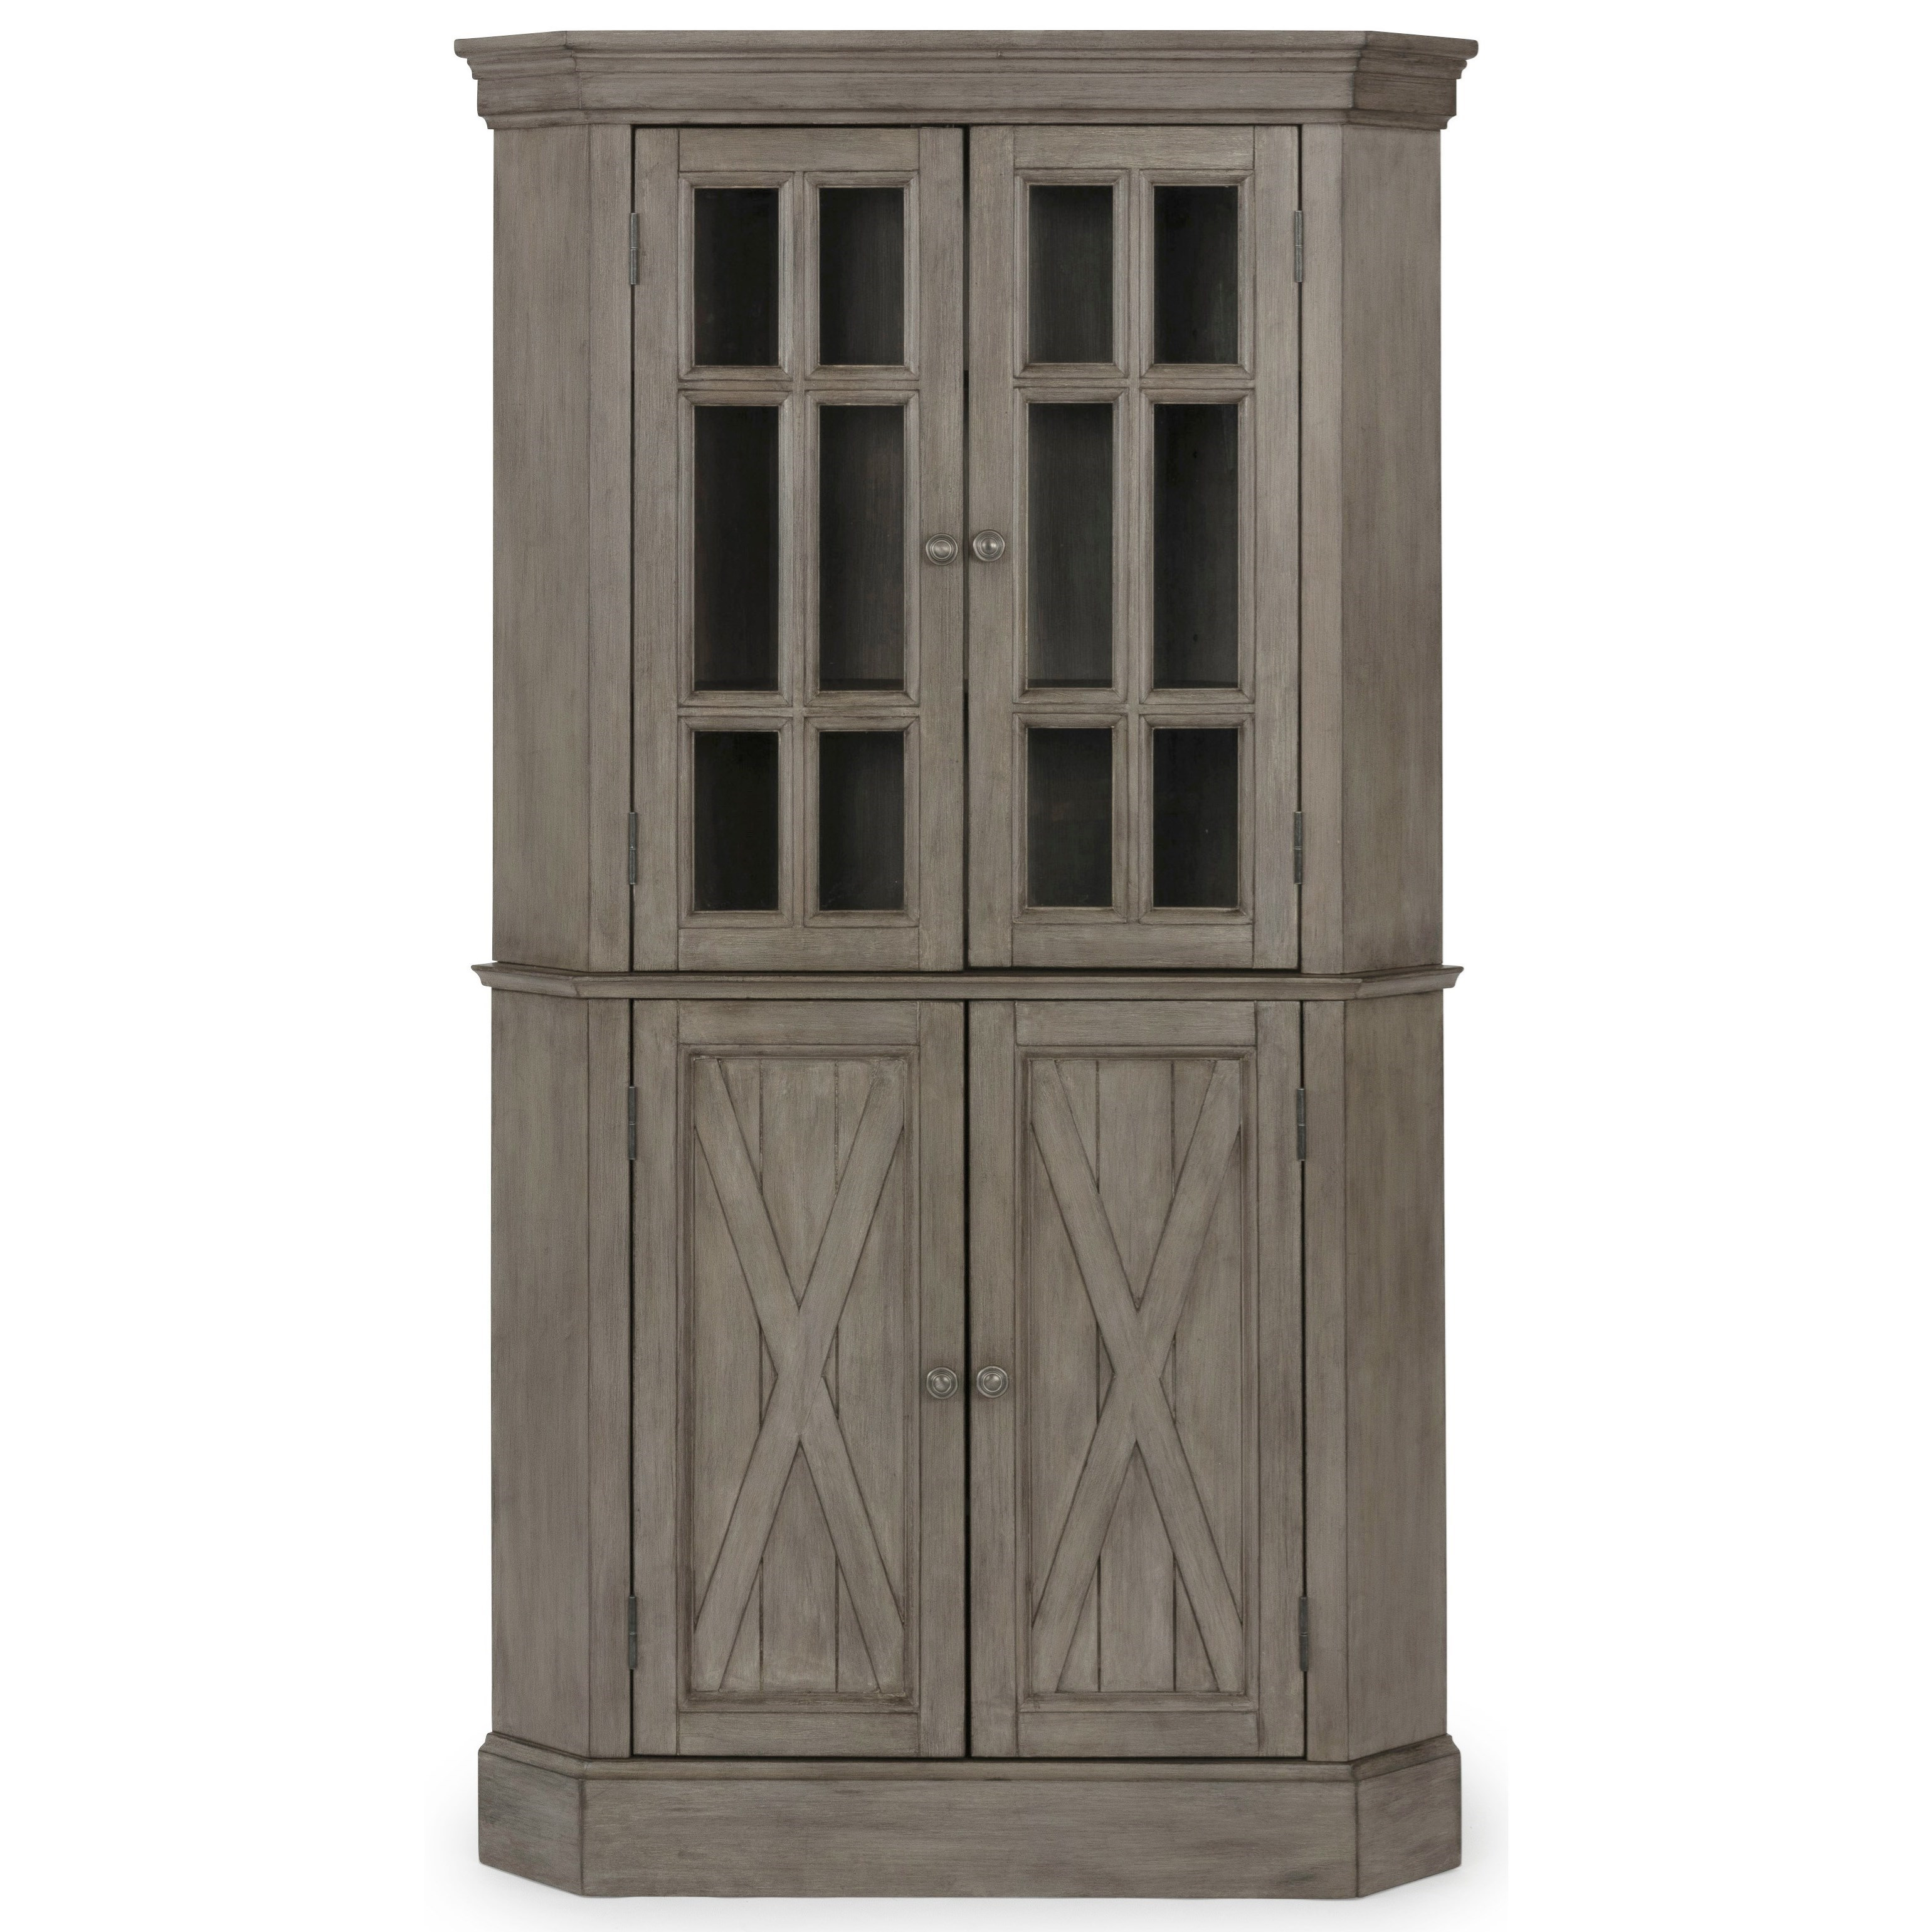 Homestyles Mountain Lodge 5525 68 Farmhouse Corner Cabinet With Adjustable Shelves Sam Levitz Furniture China Cabinets